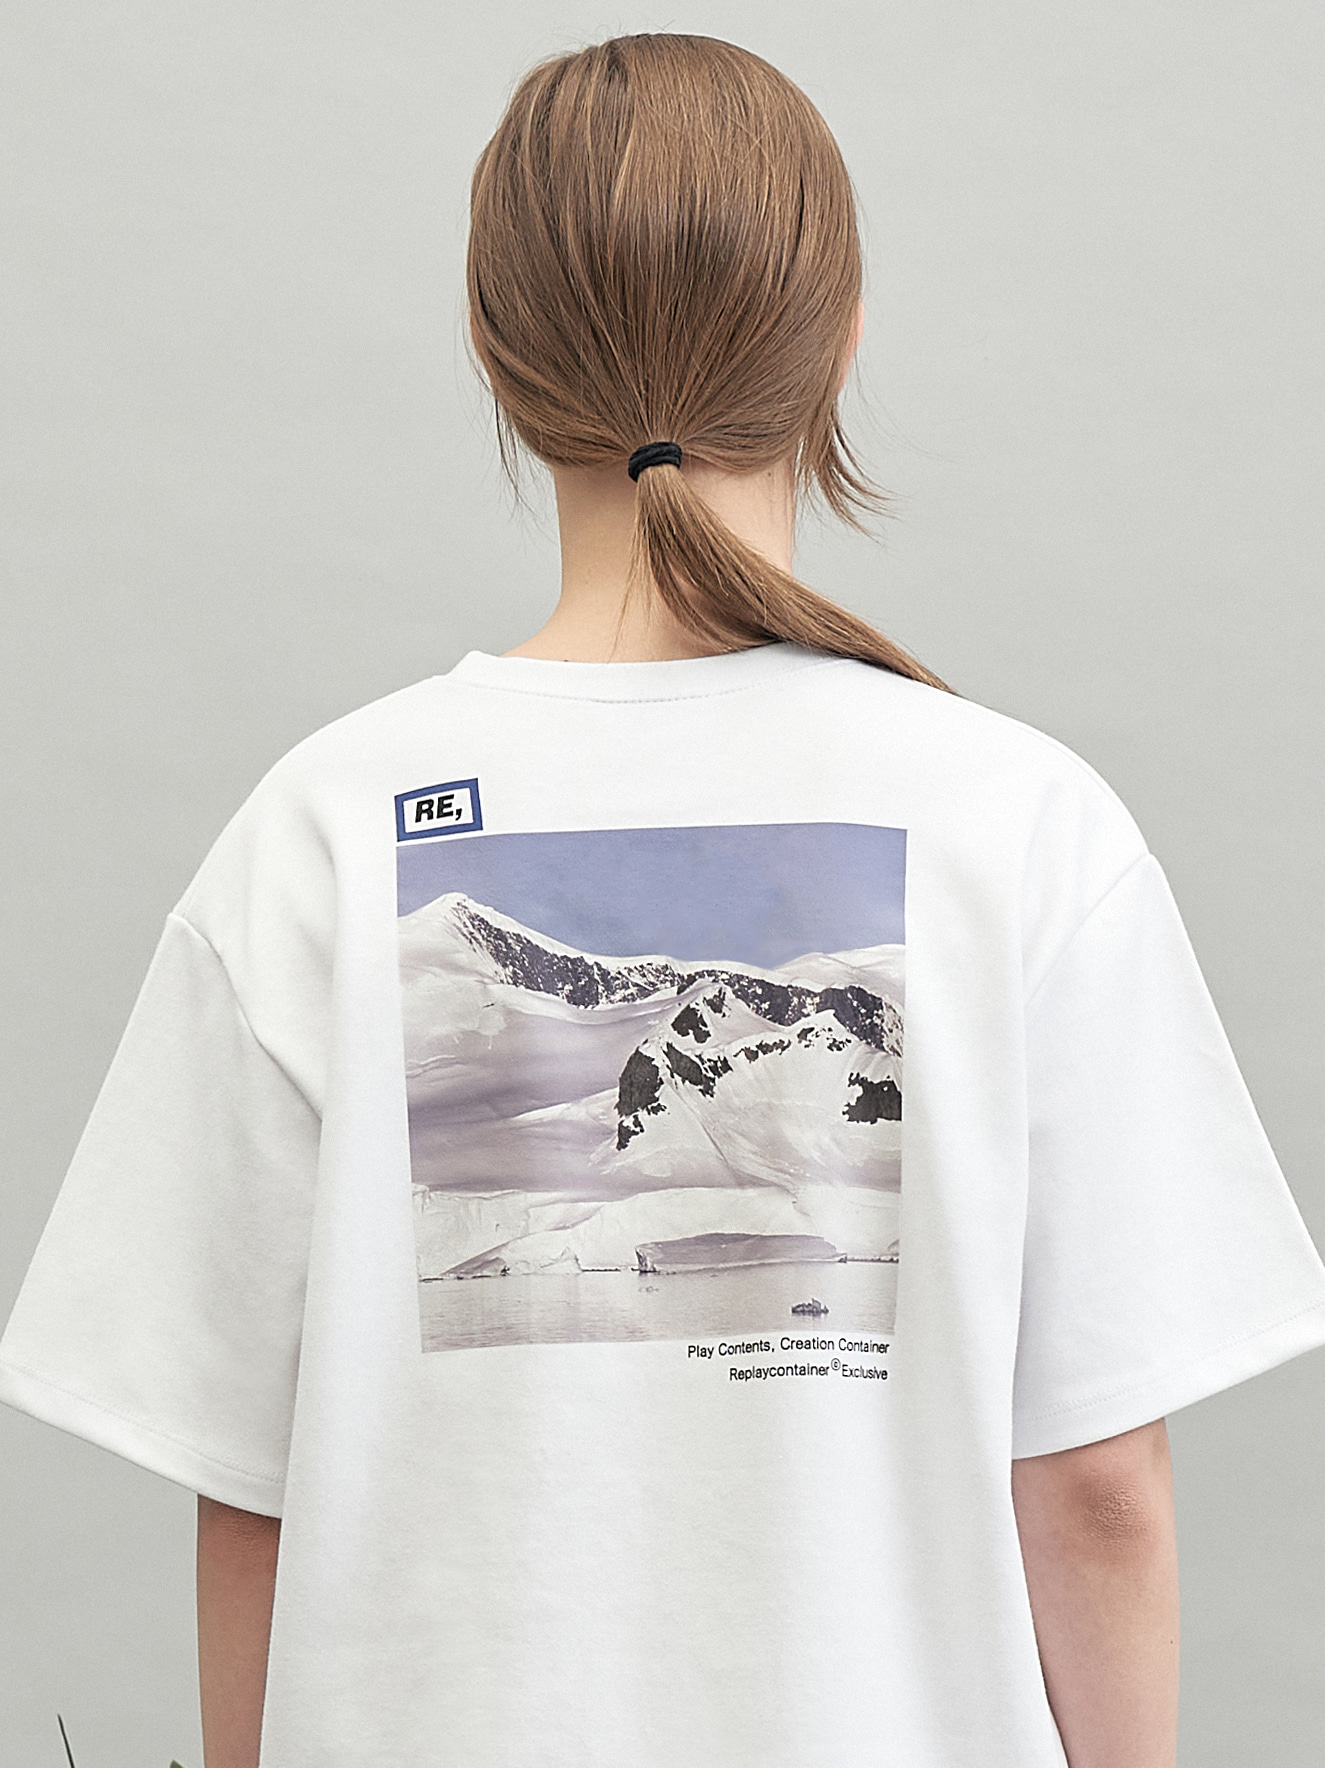 RE square campaign half tee (snow)